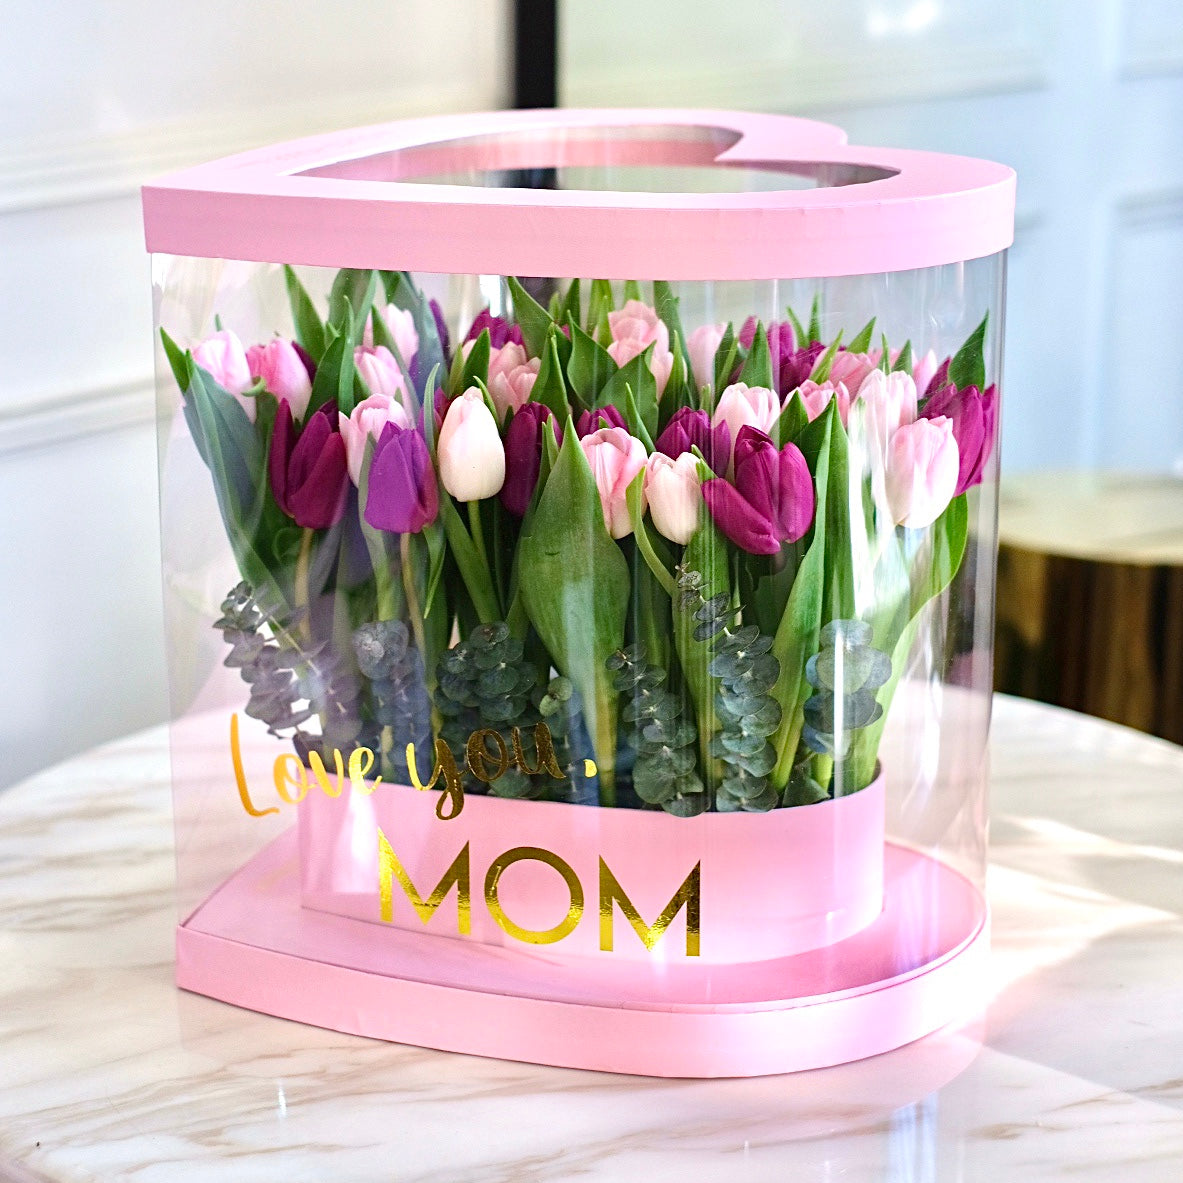 Tulips - Pink Amour Box